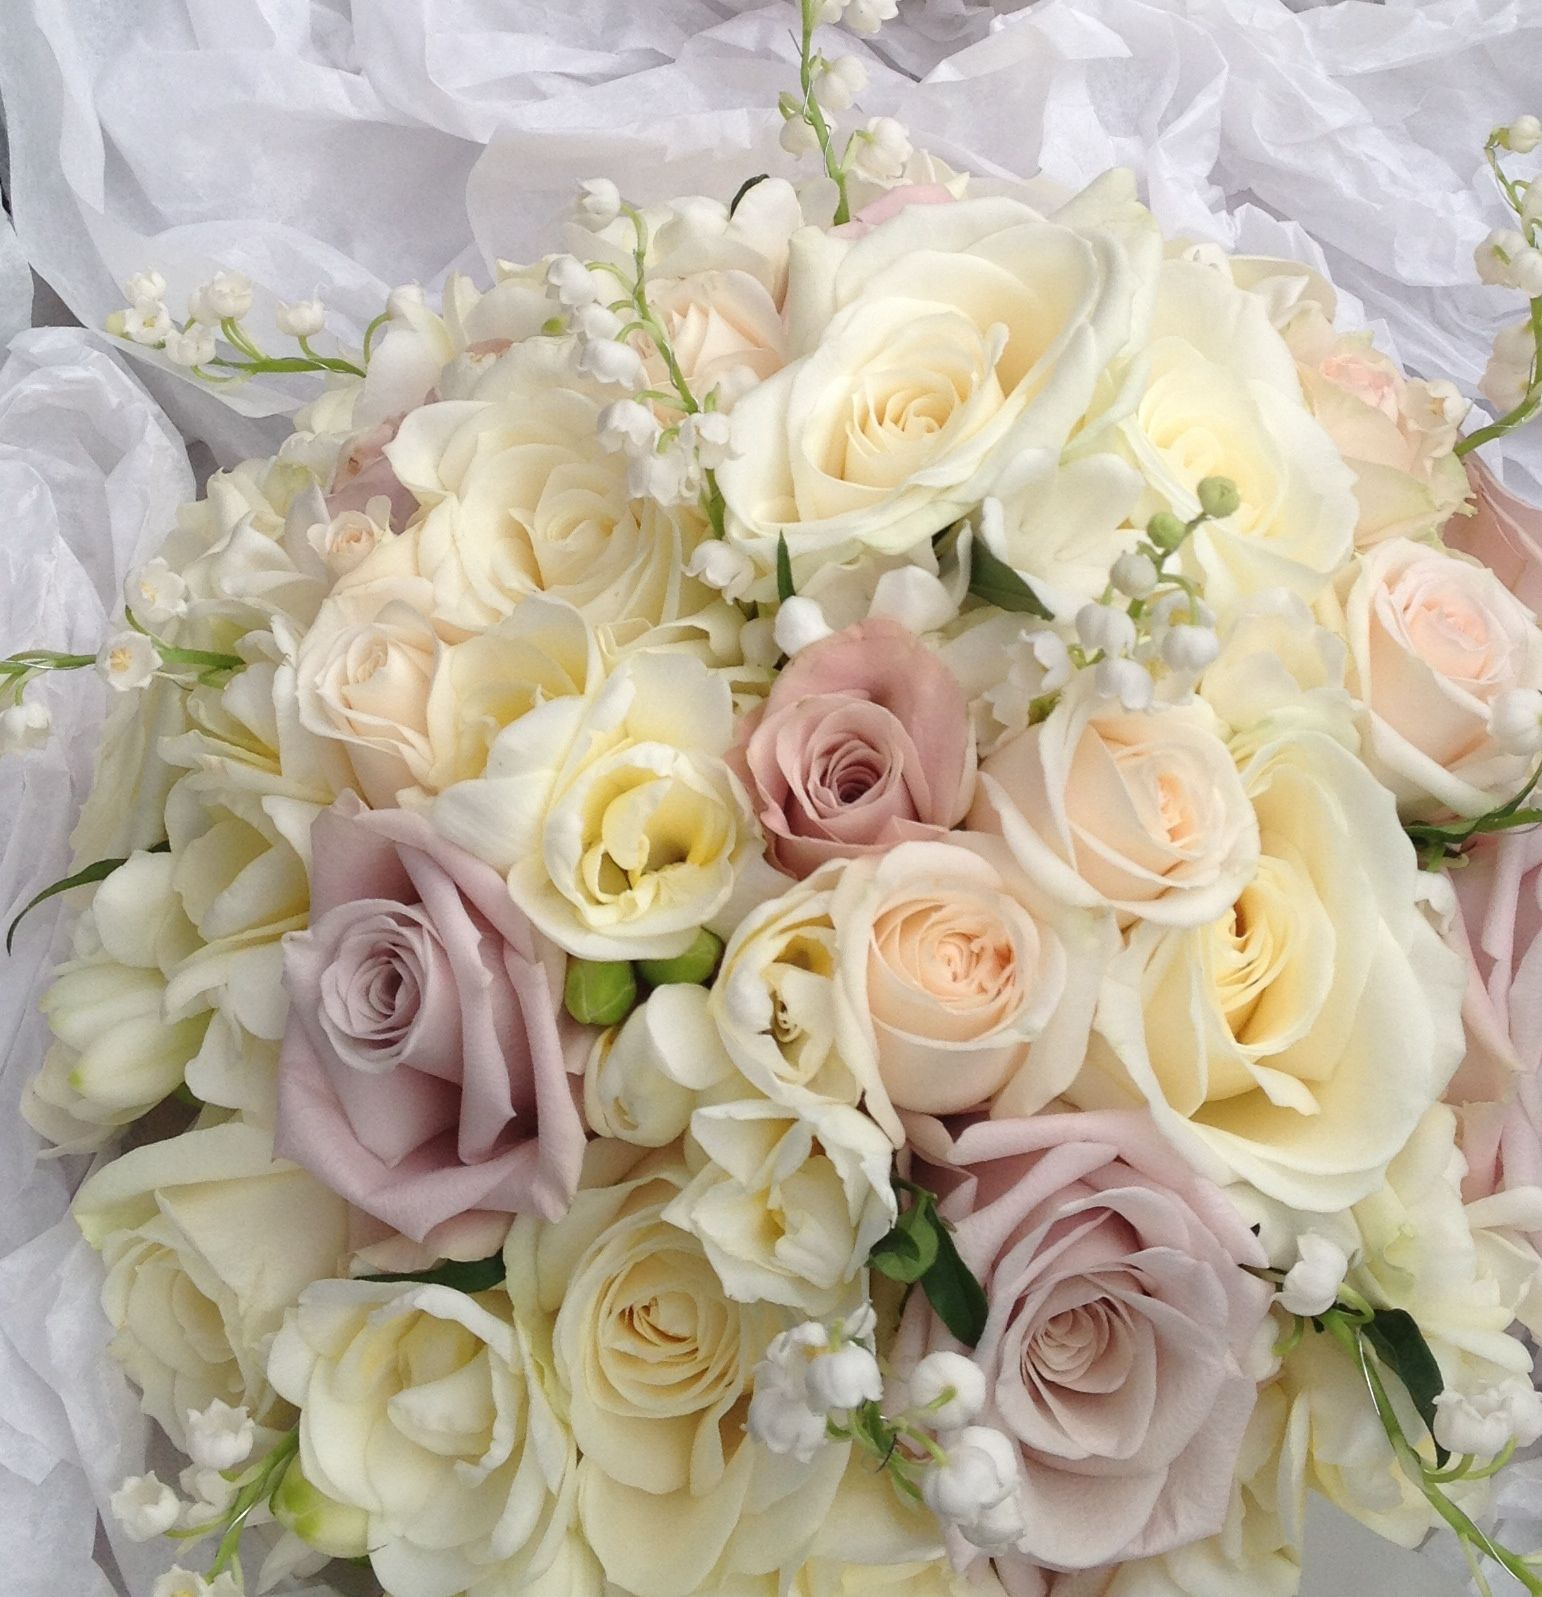 Bridal bouquet in roses, freesia, lily of the valley and